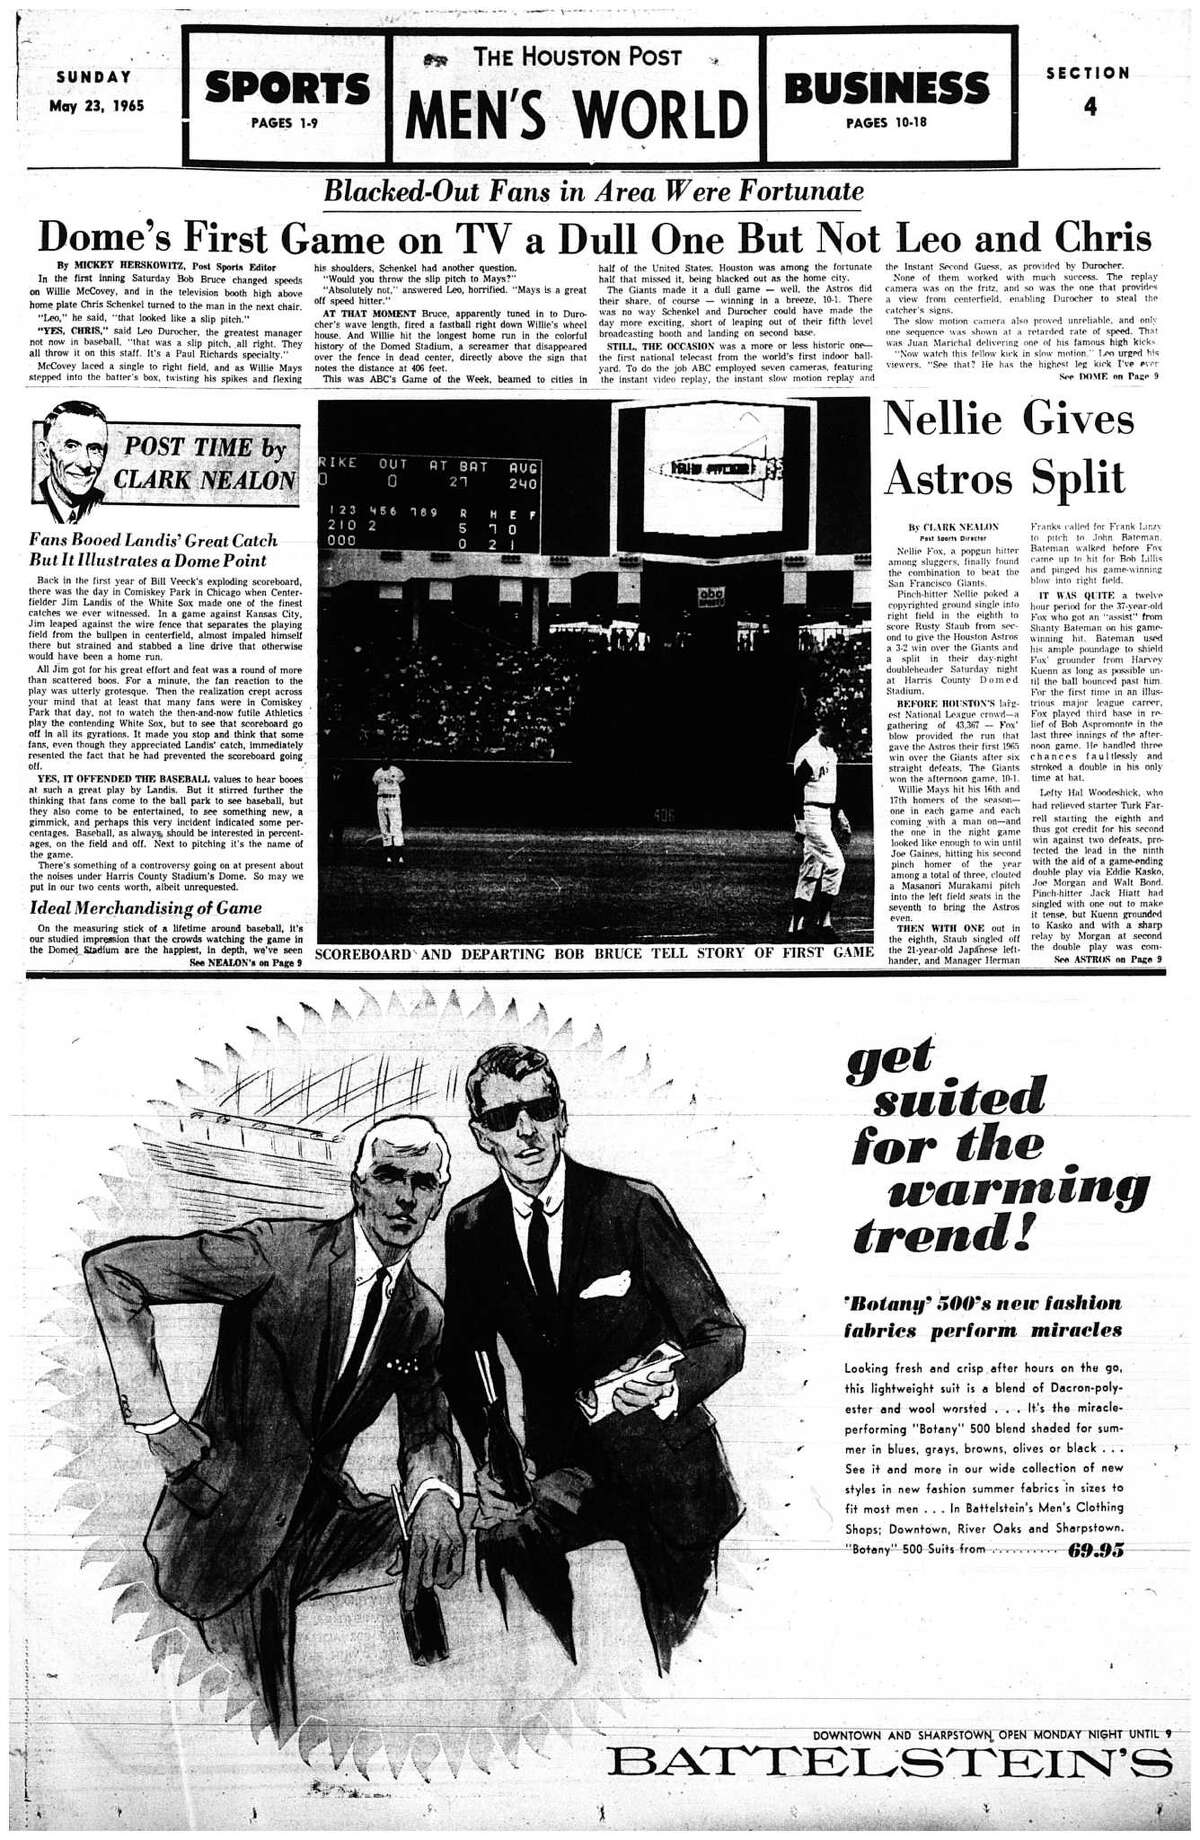 Houston Post inside page: May 23, 1965 - section 4, page 1.